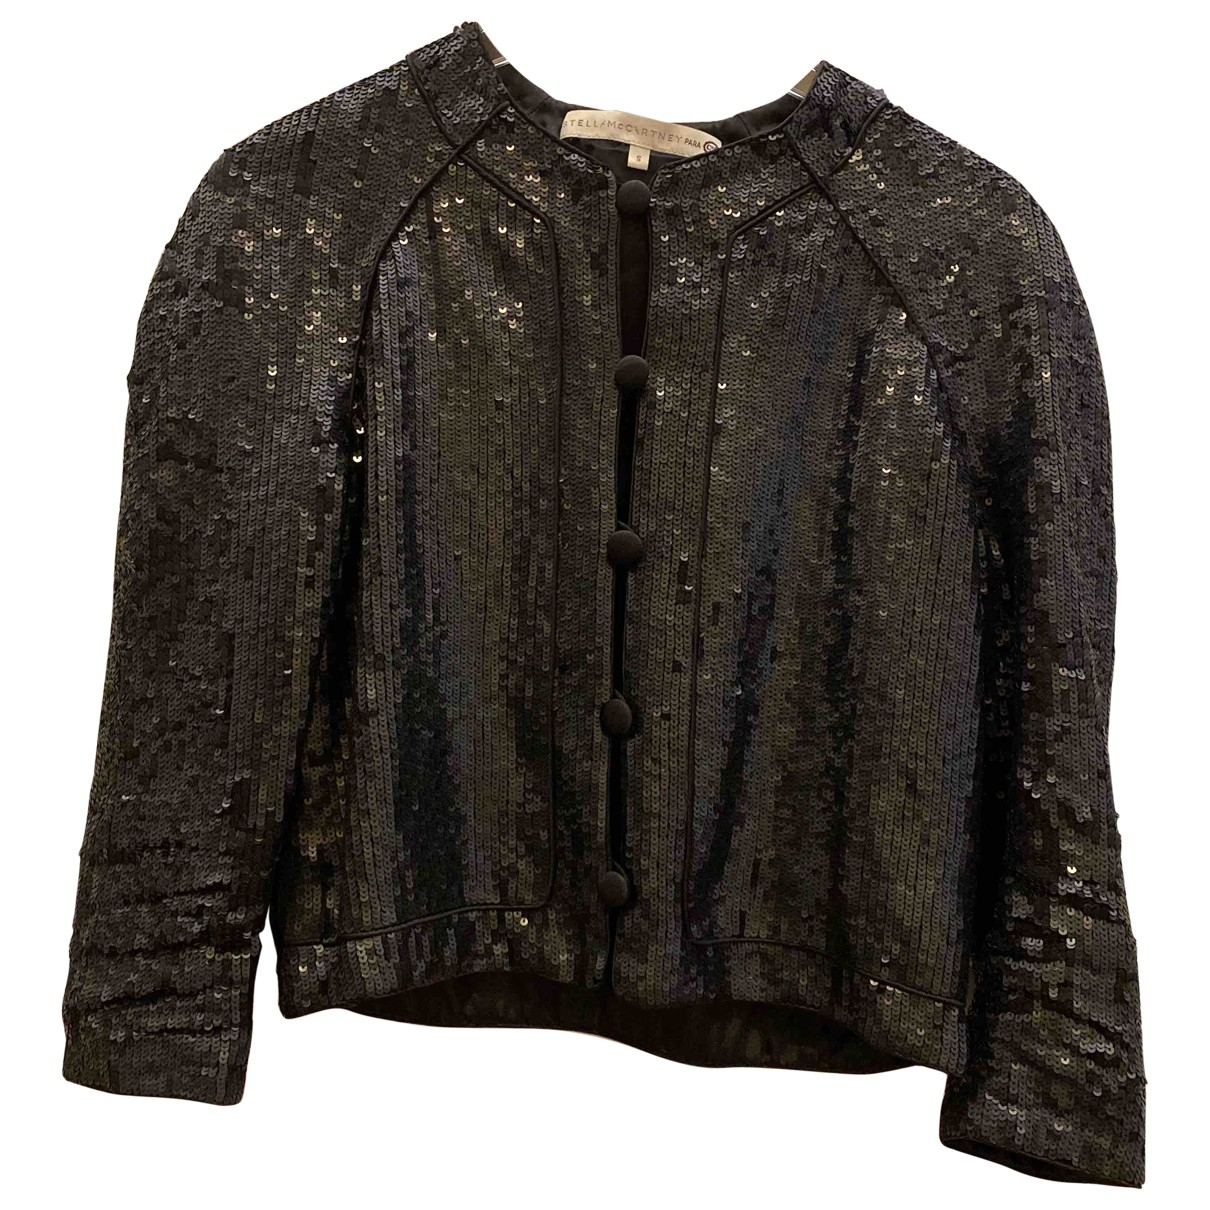 Stella Mccartney \N Black Glitter jacket for Women S International